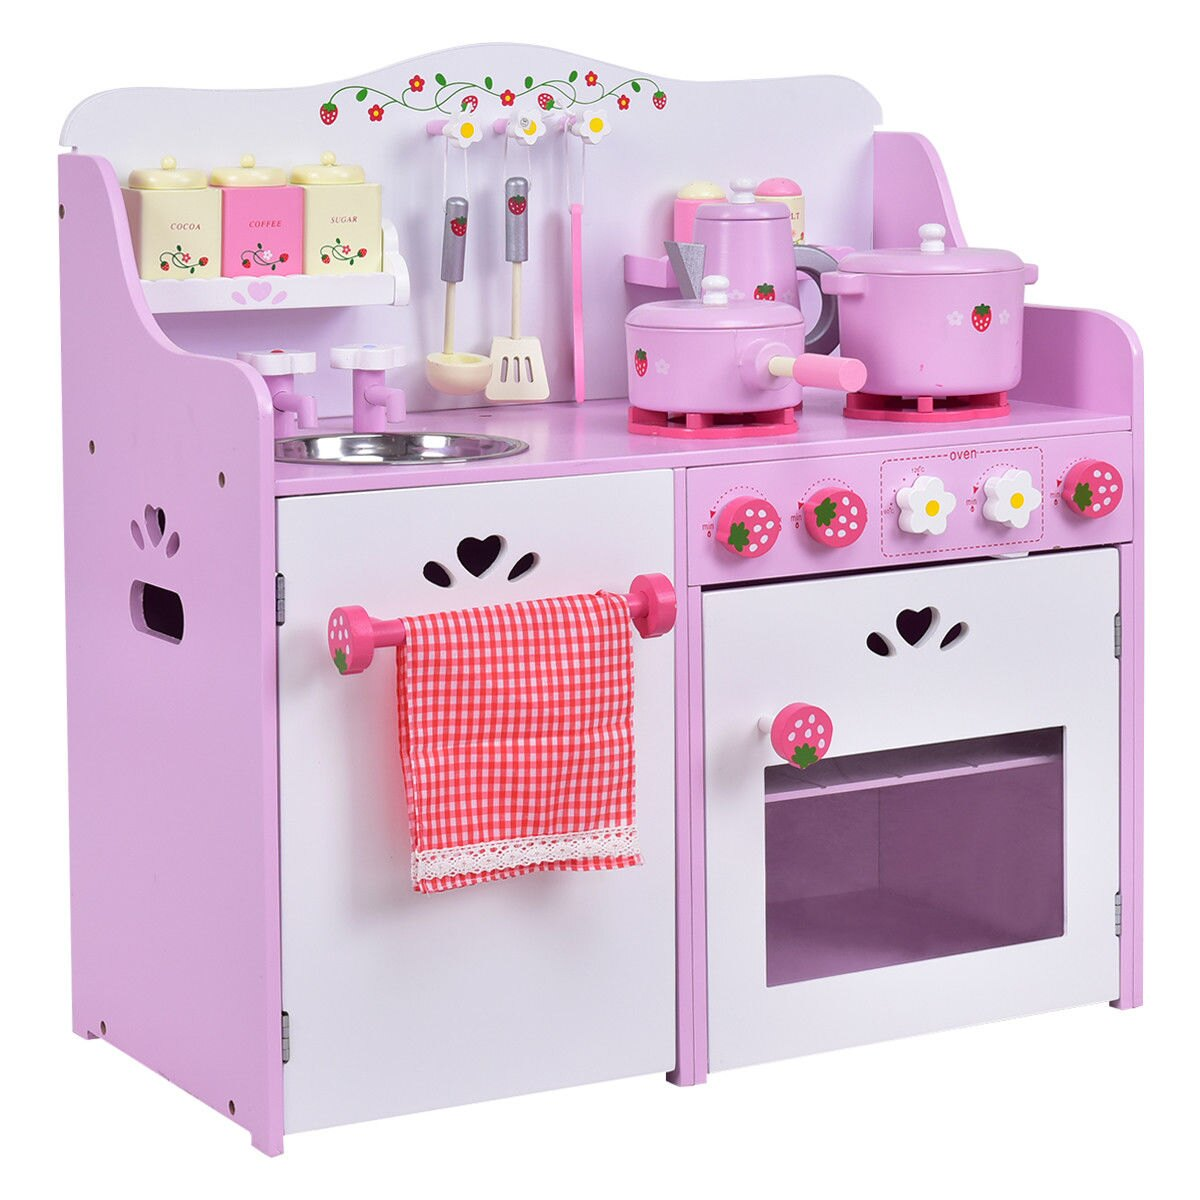 Kitchen Set as bay's first birthday gift Ideas